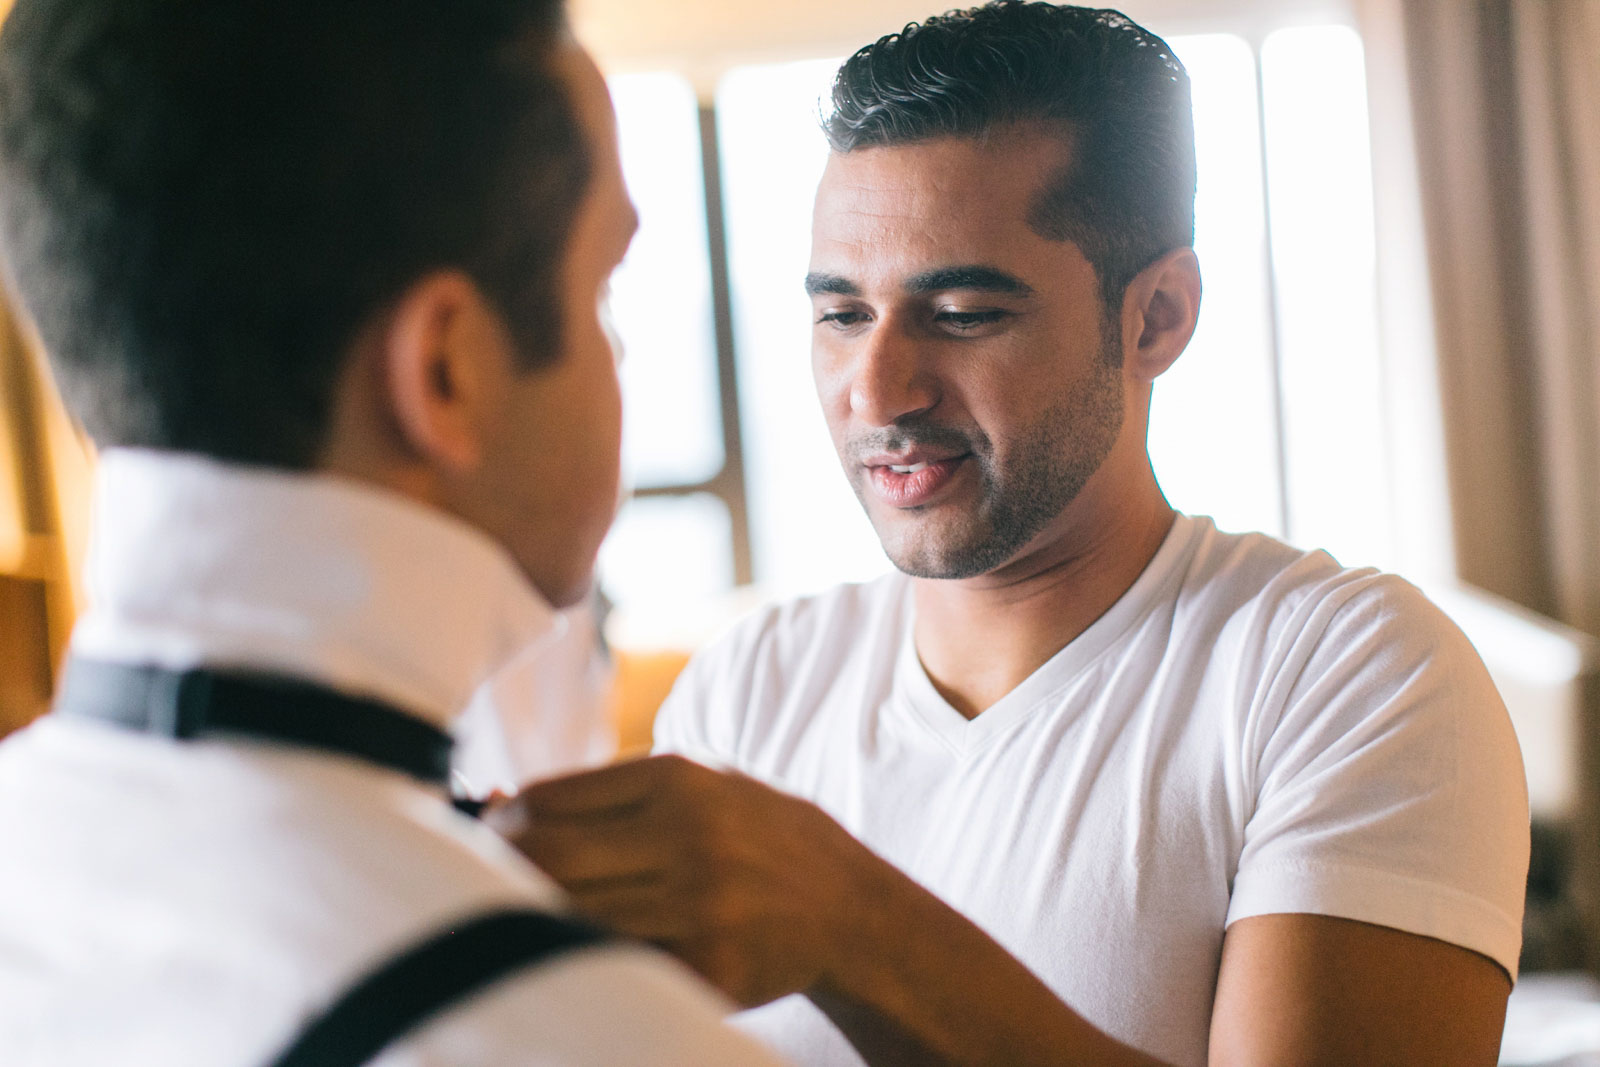 Groom helping groomsman with his bow tie in getting ready suite with lots of natural light